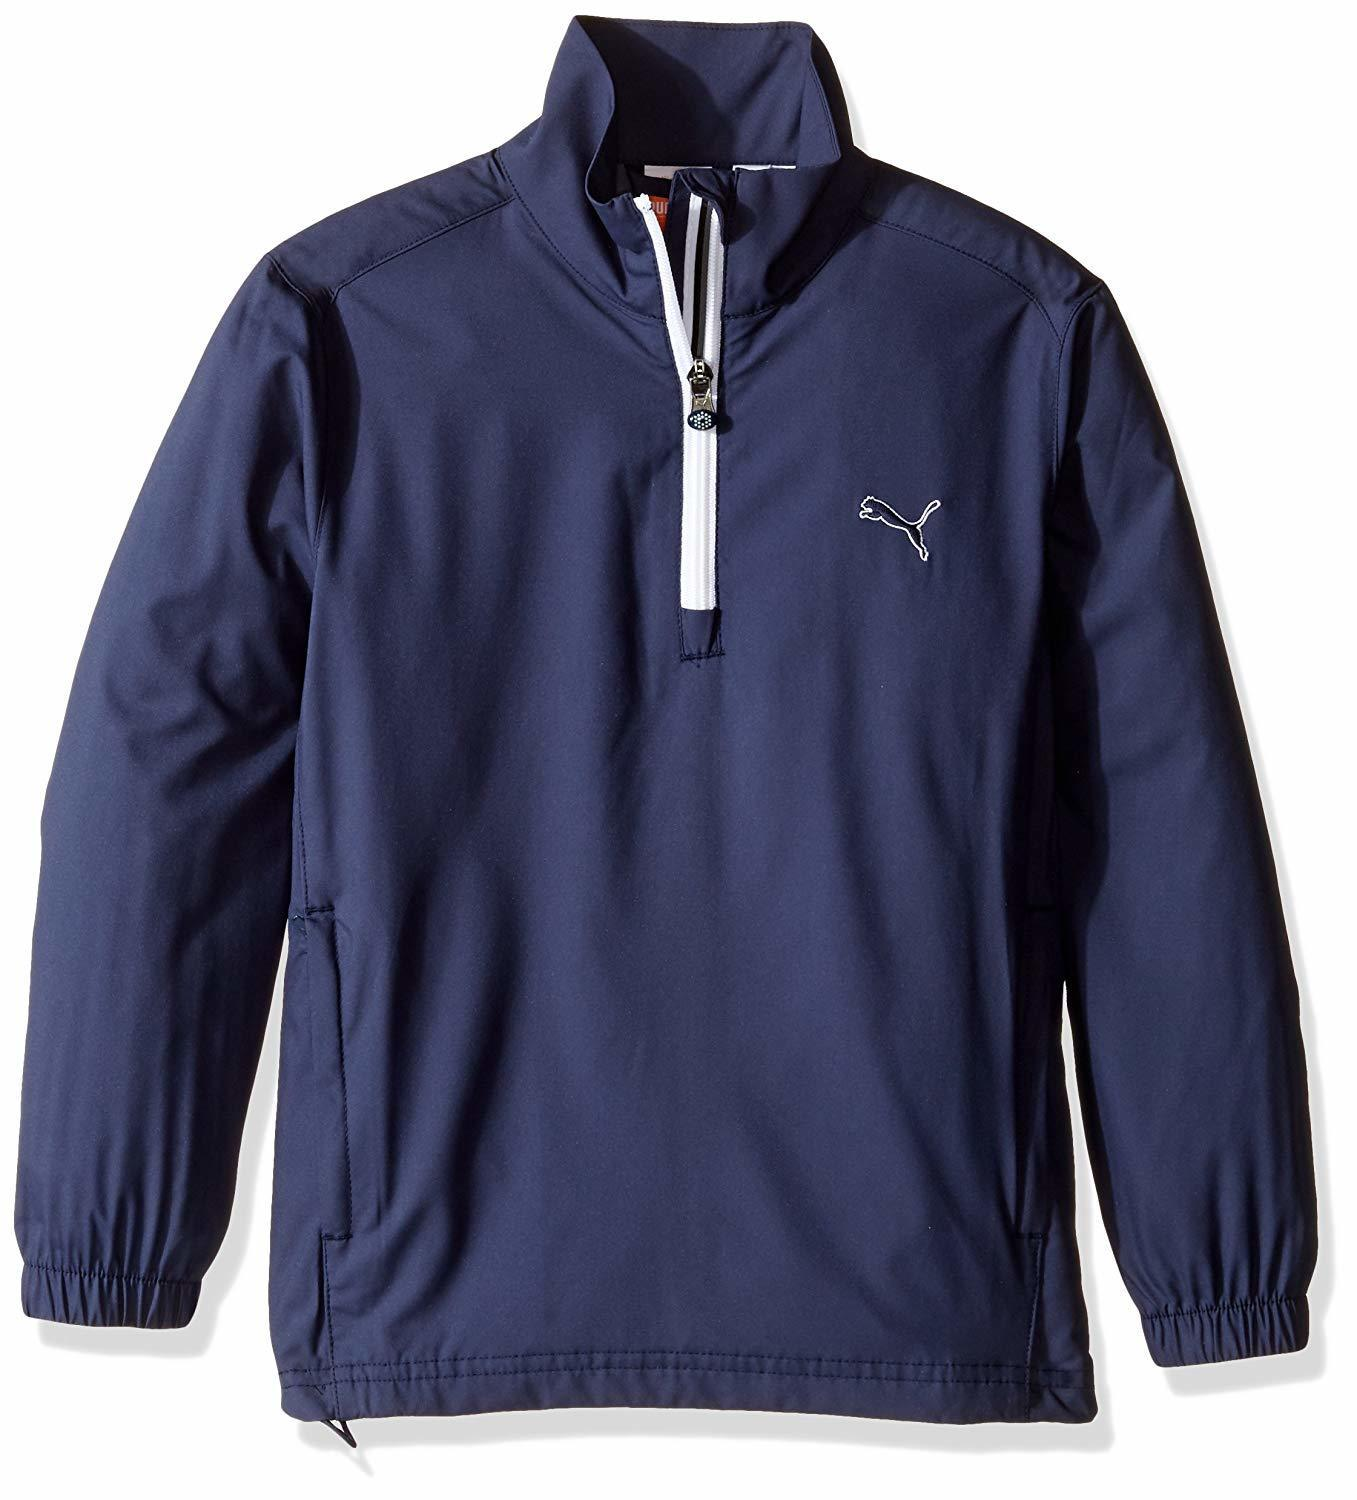 Puma kids winter golf jacket